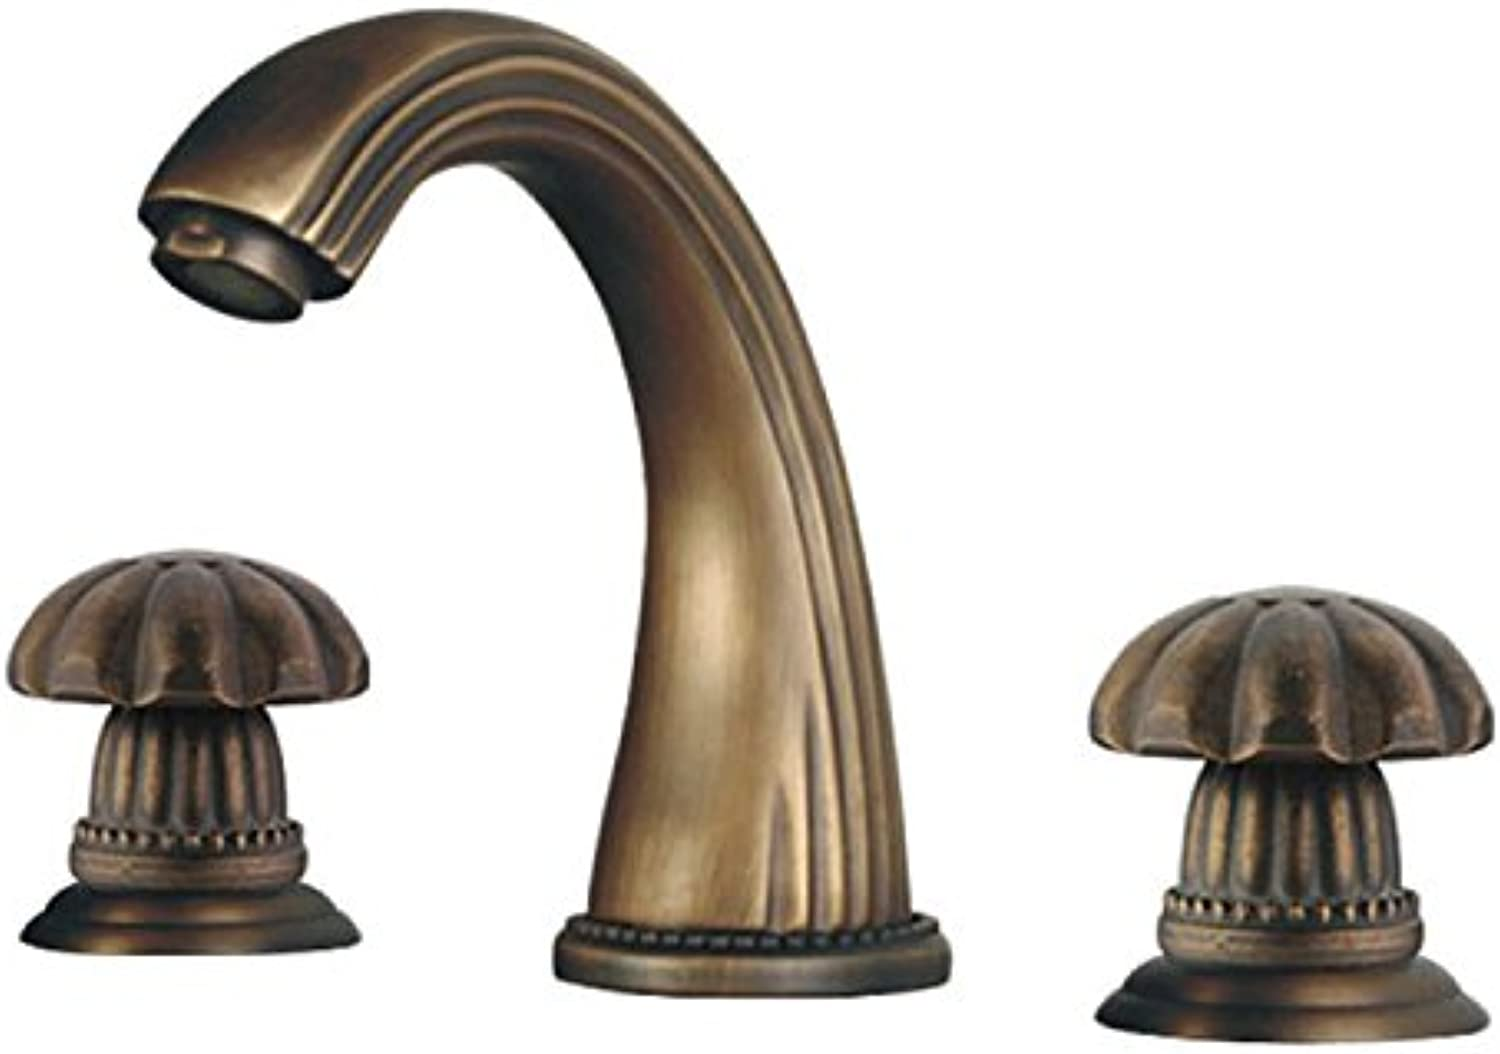 SHLONG Tap Copper Antique Three-Piece Set Split Bathtub Faucet